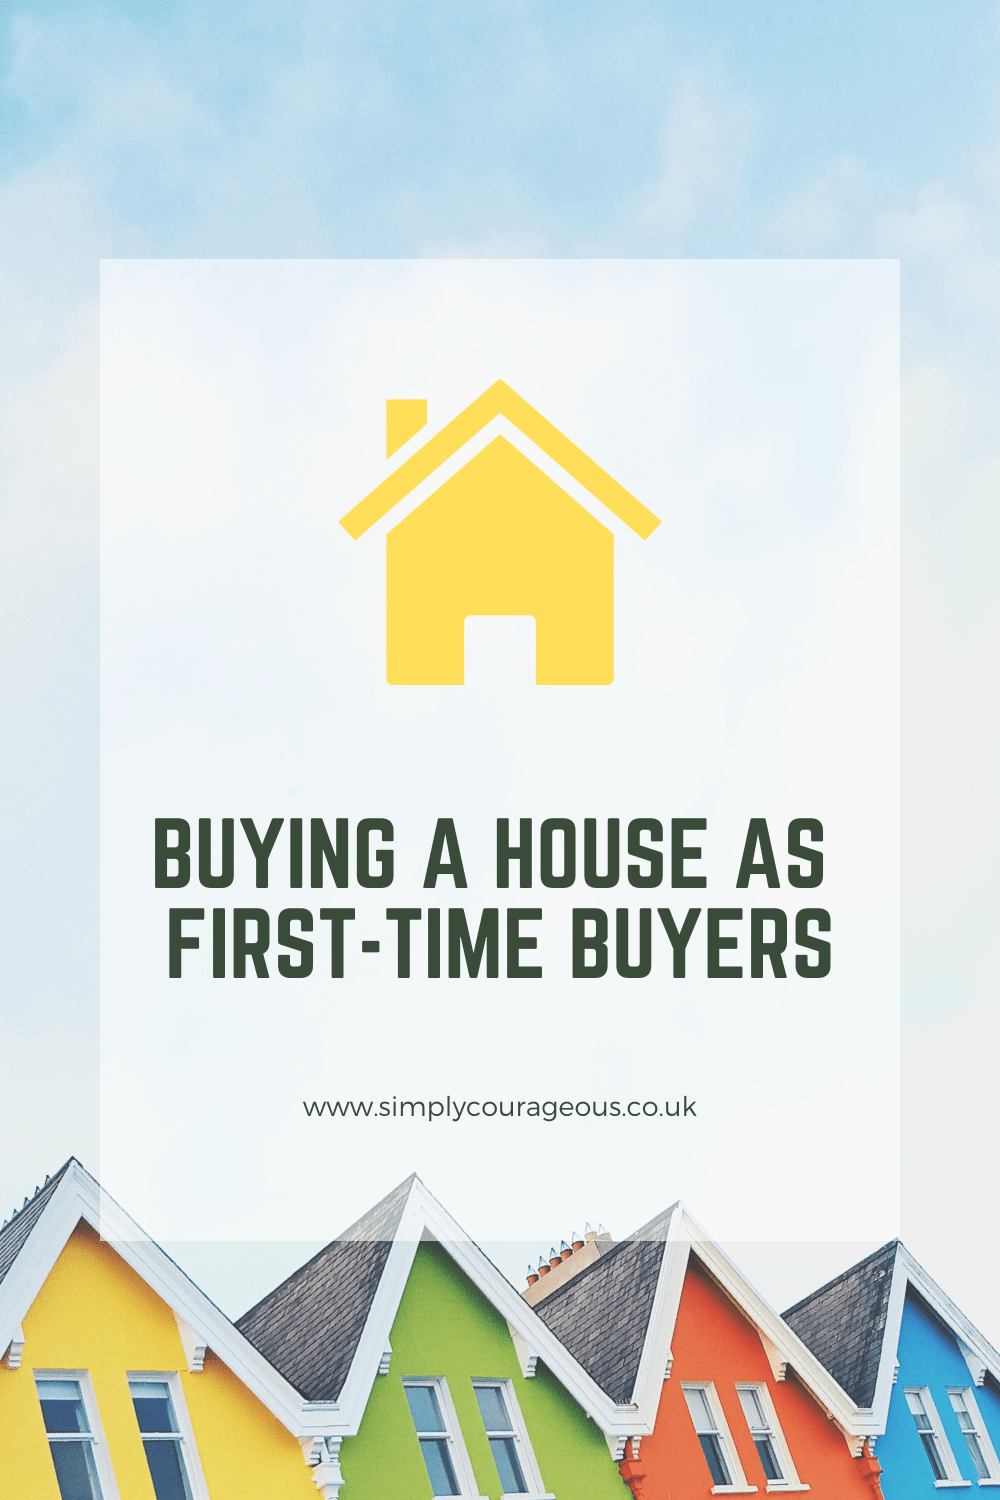 Buying A House As First-Time Buyers